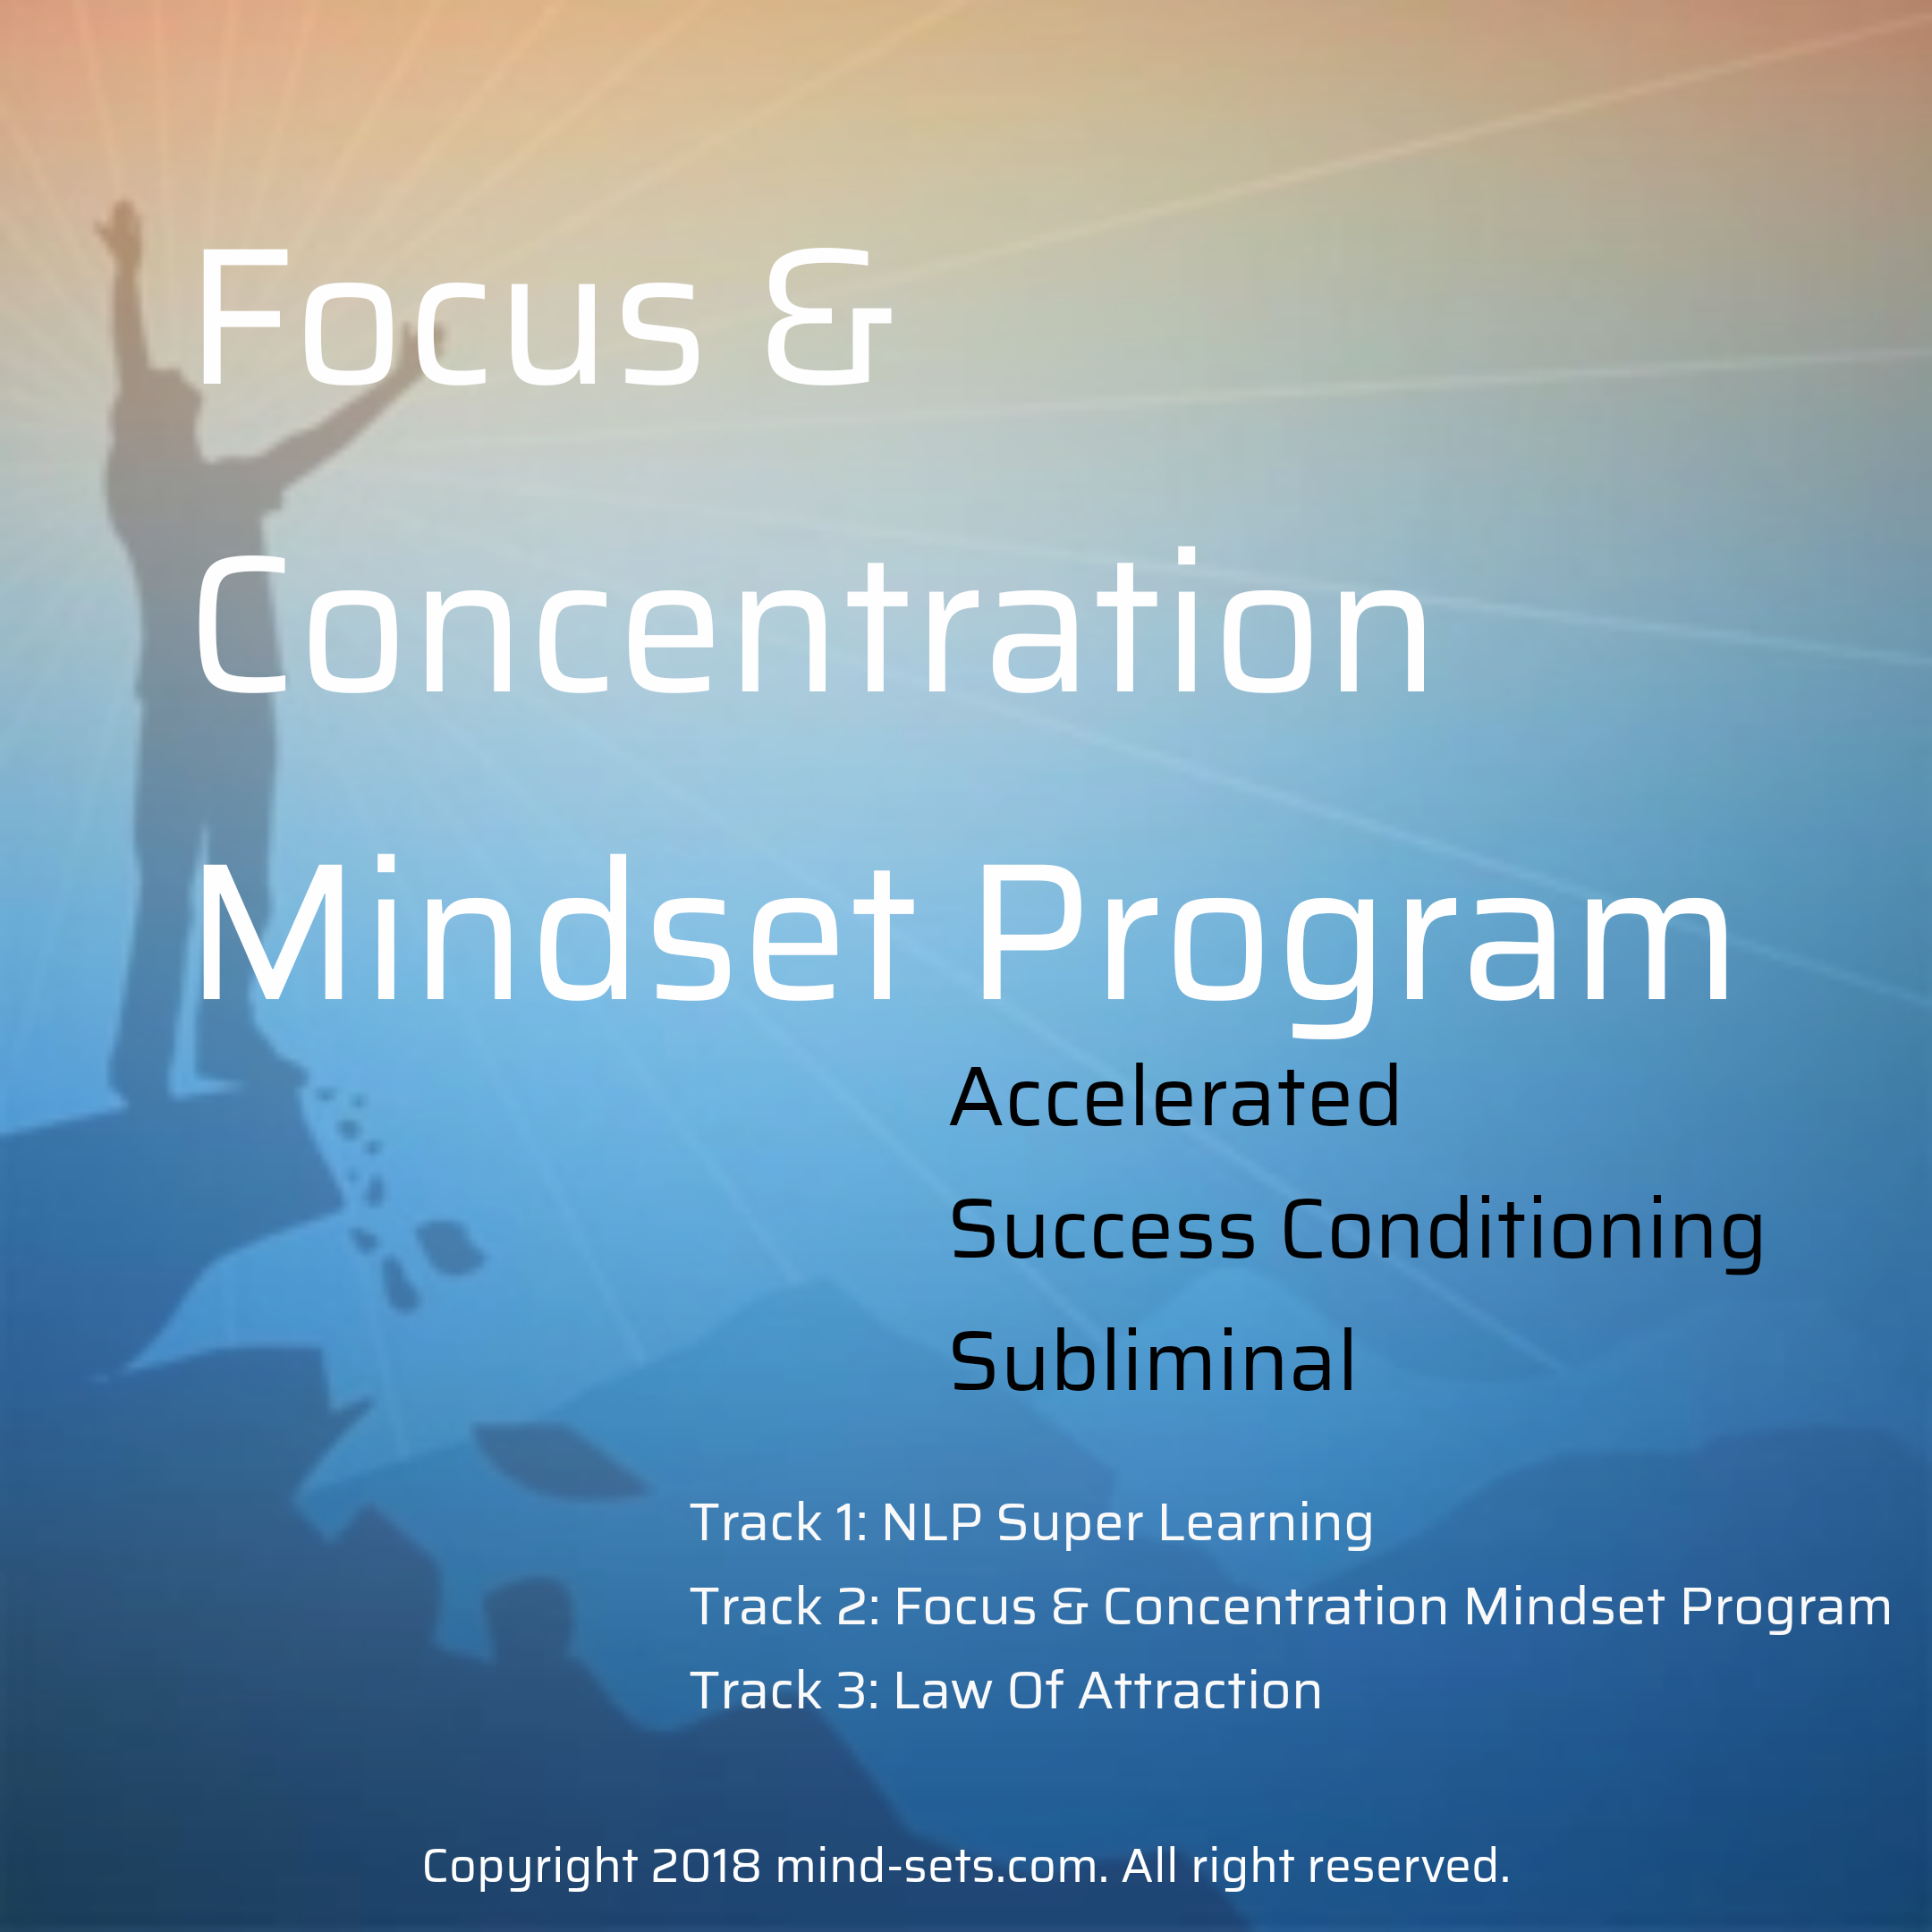 Focus & Concentration Mindset Program